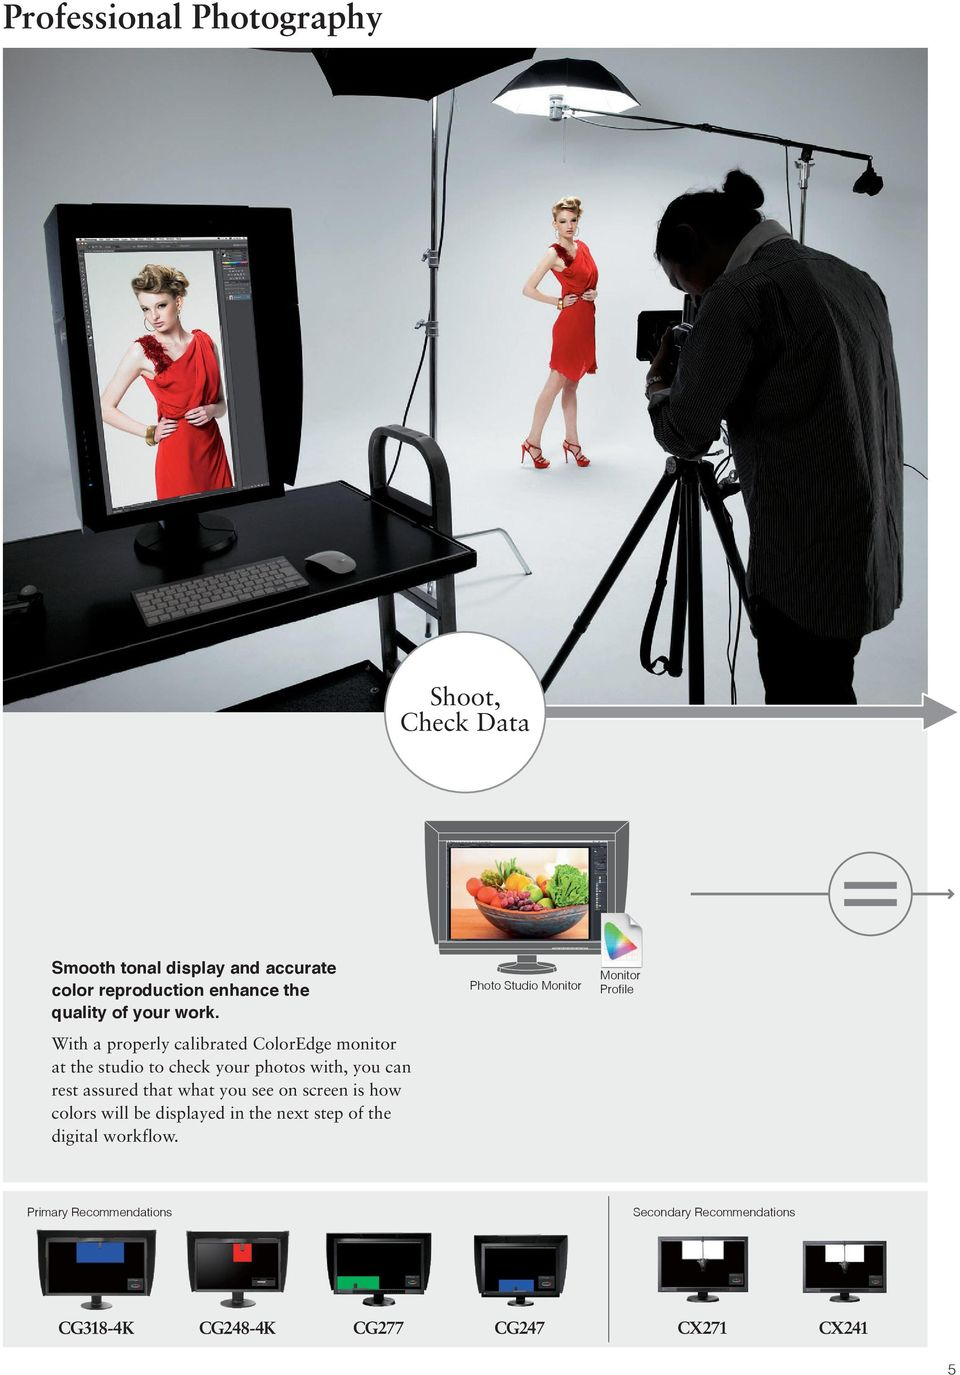 With a properly calibrated ColorEdge monitor at the studio to check your photos with, you can rest